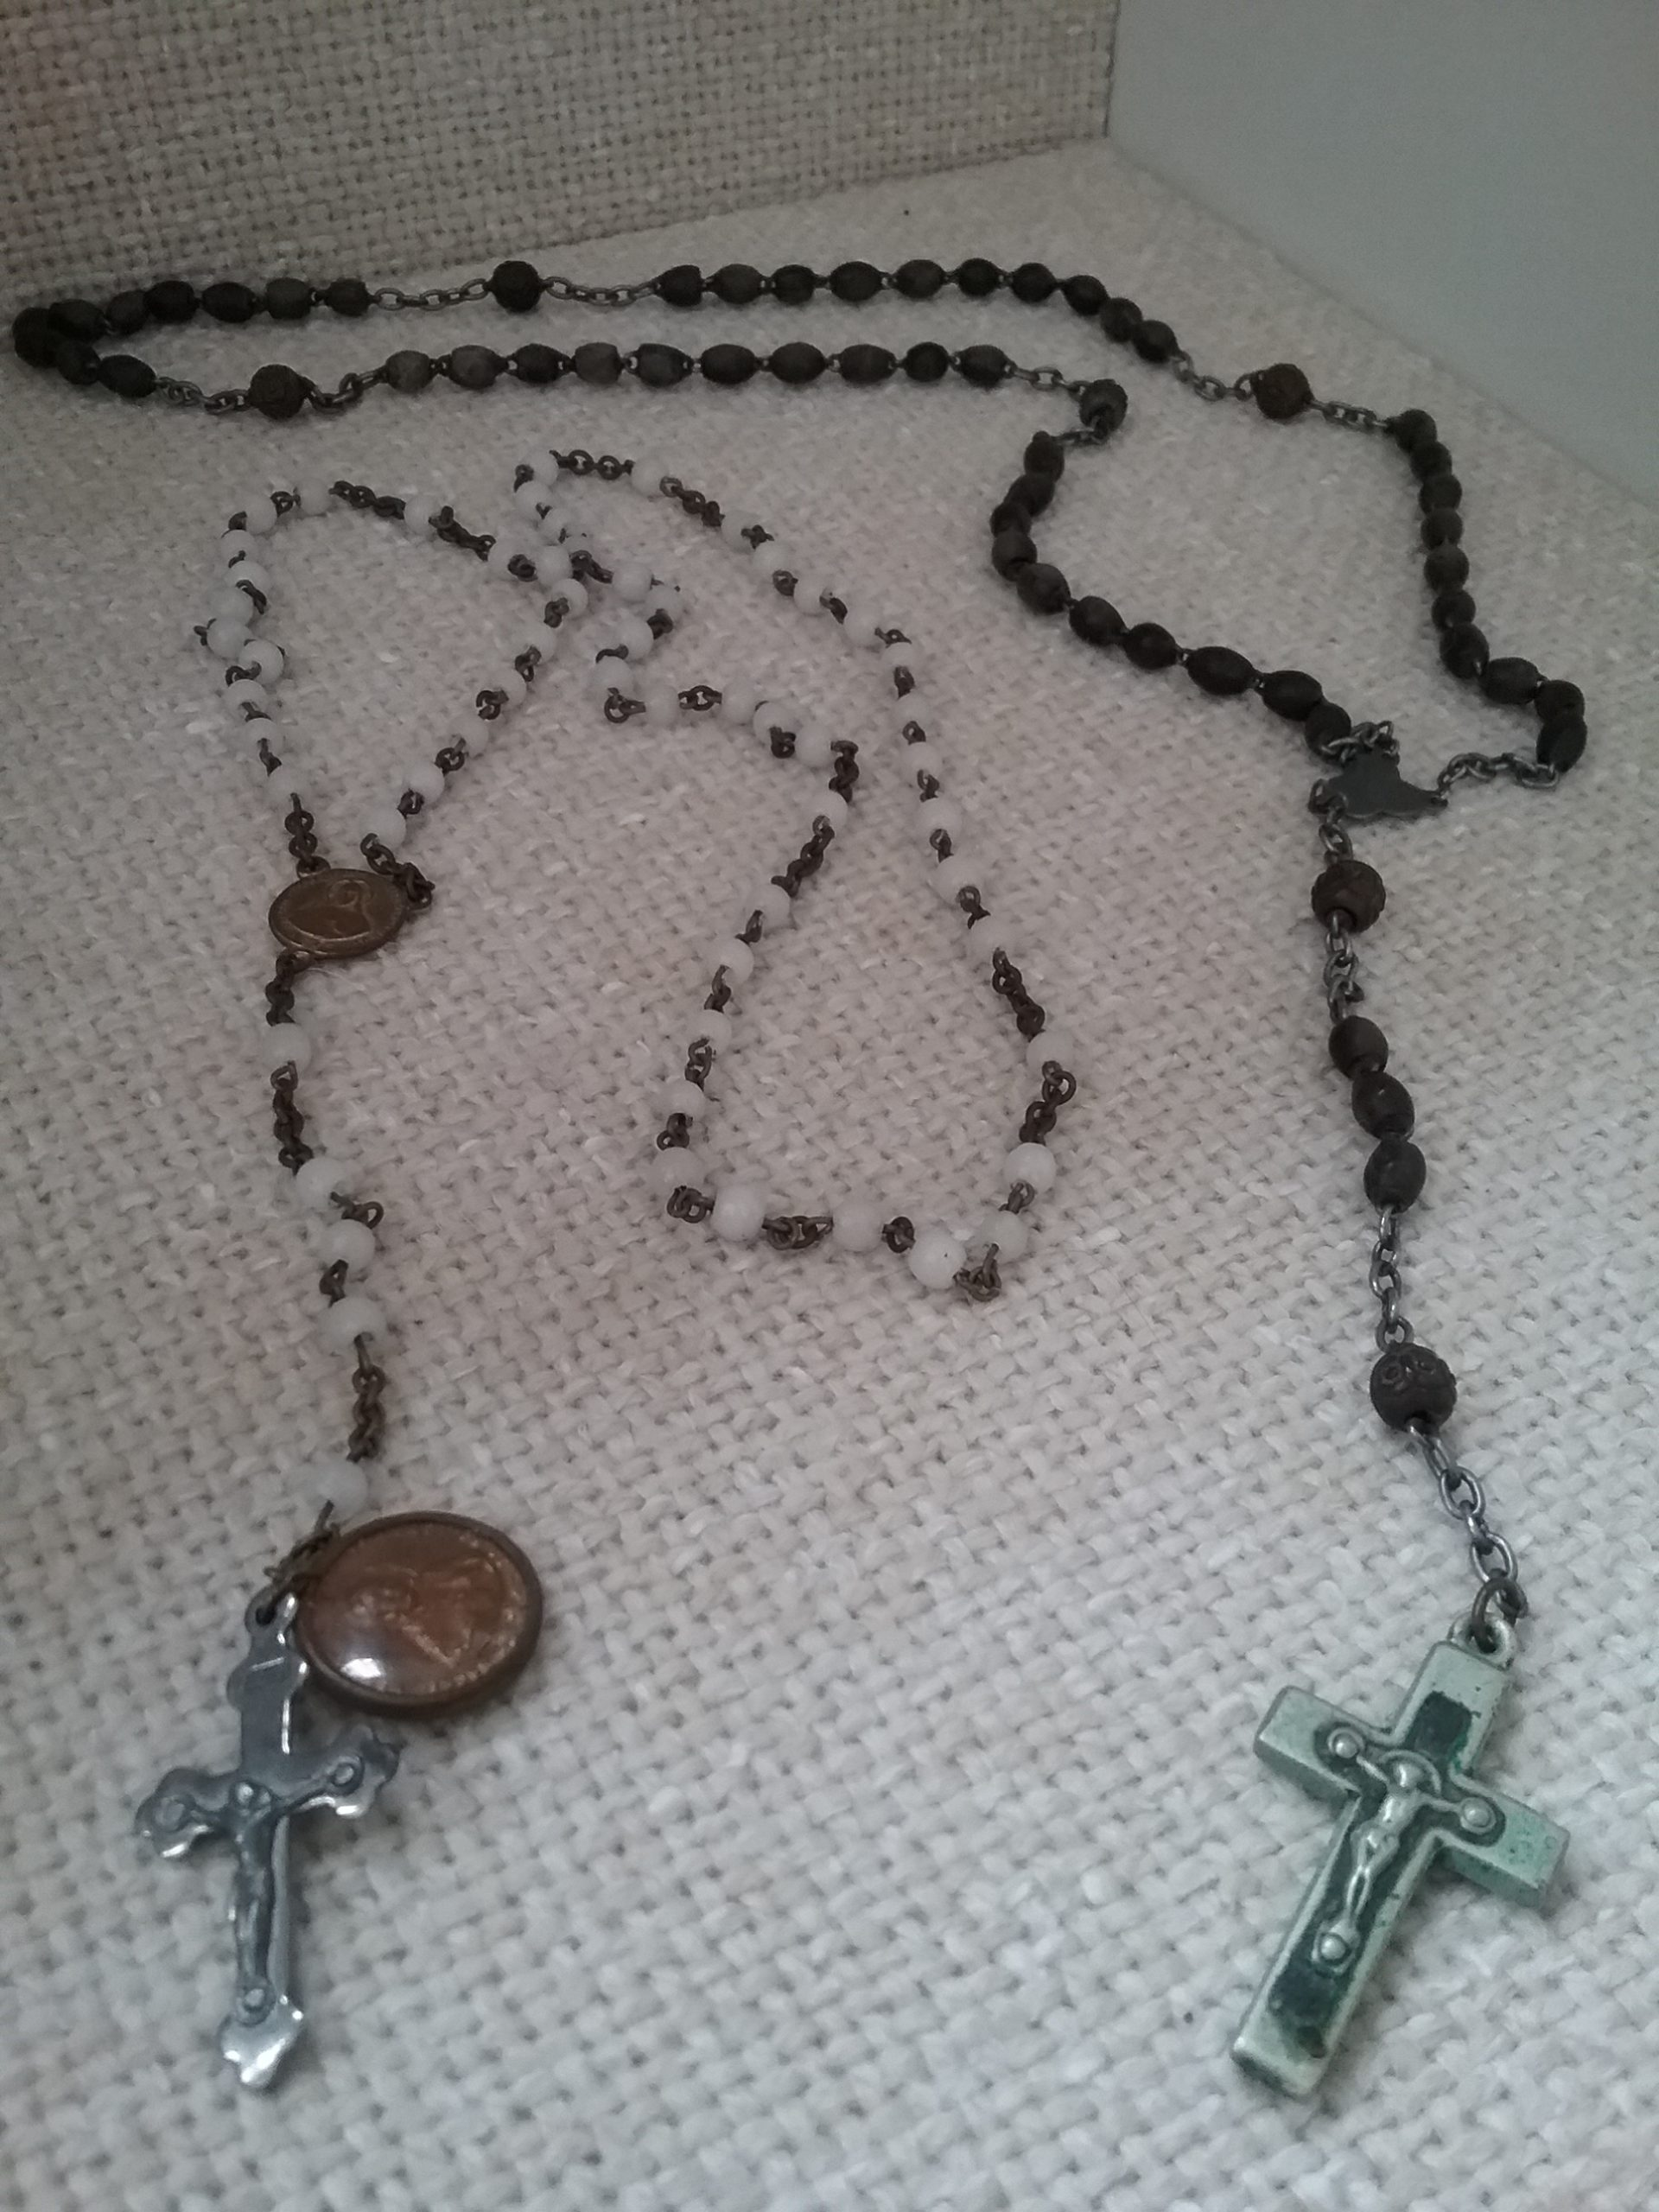 Catholic Rosaries, one with white beads, the other with black beads. Donated by Stella LeBlanc. MCHS collections.